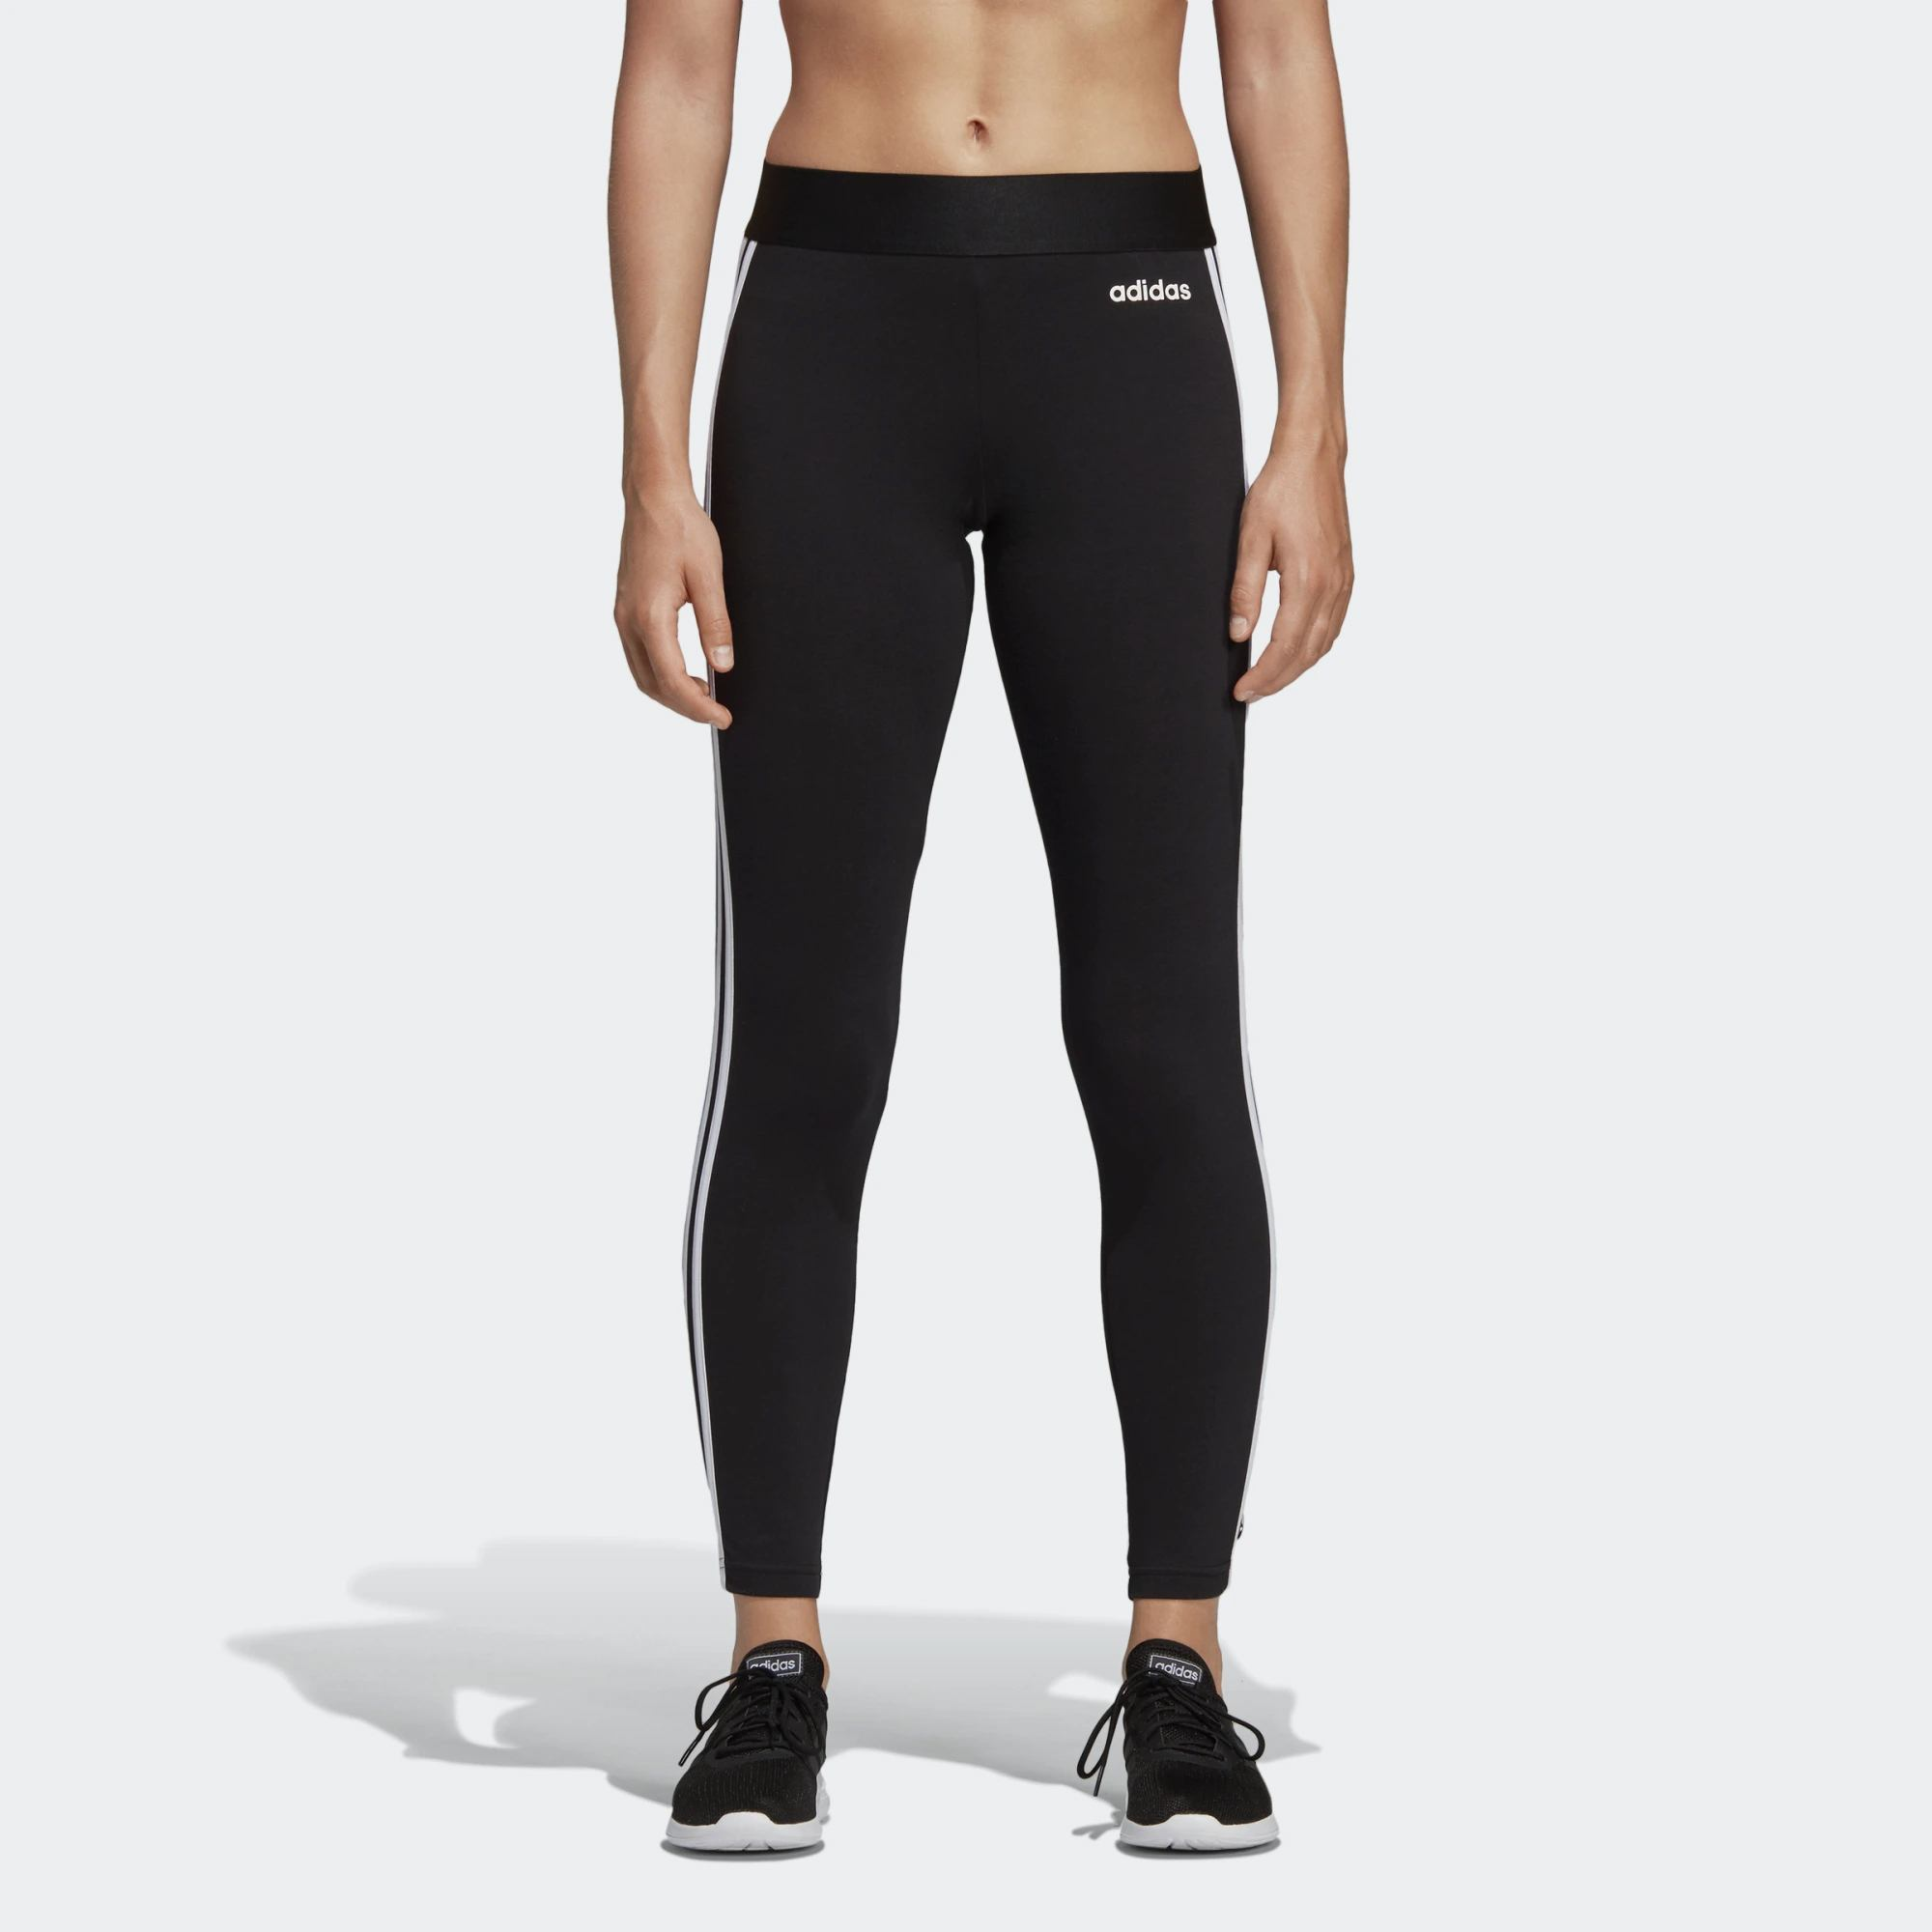 adidas Core Essentials 3-Stripes Women's Tights (DP2389)